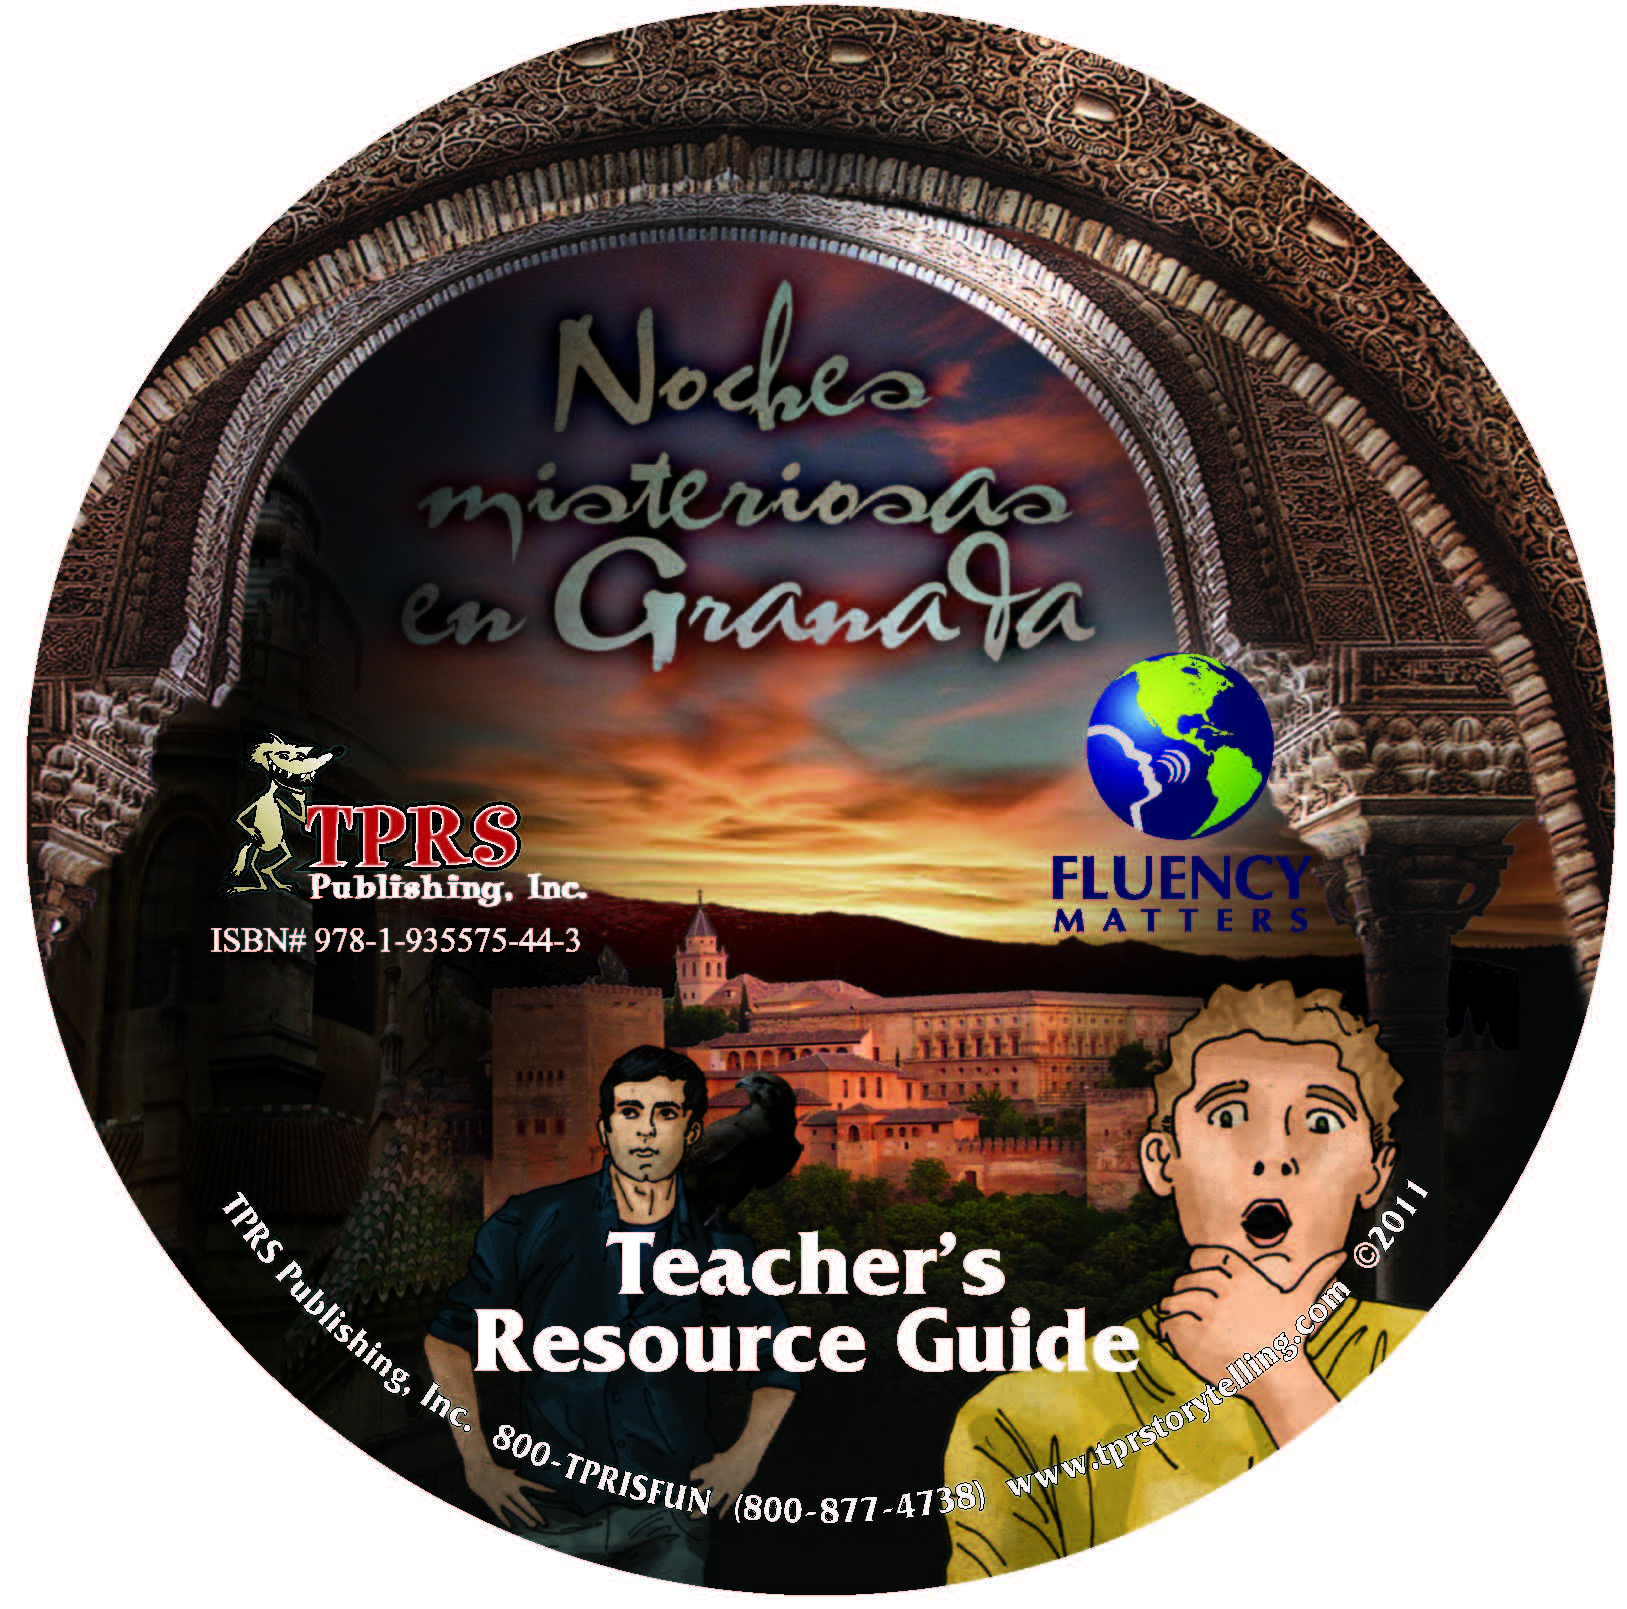 Noches misteriosas en Granada – Teacher's Guide on CD